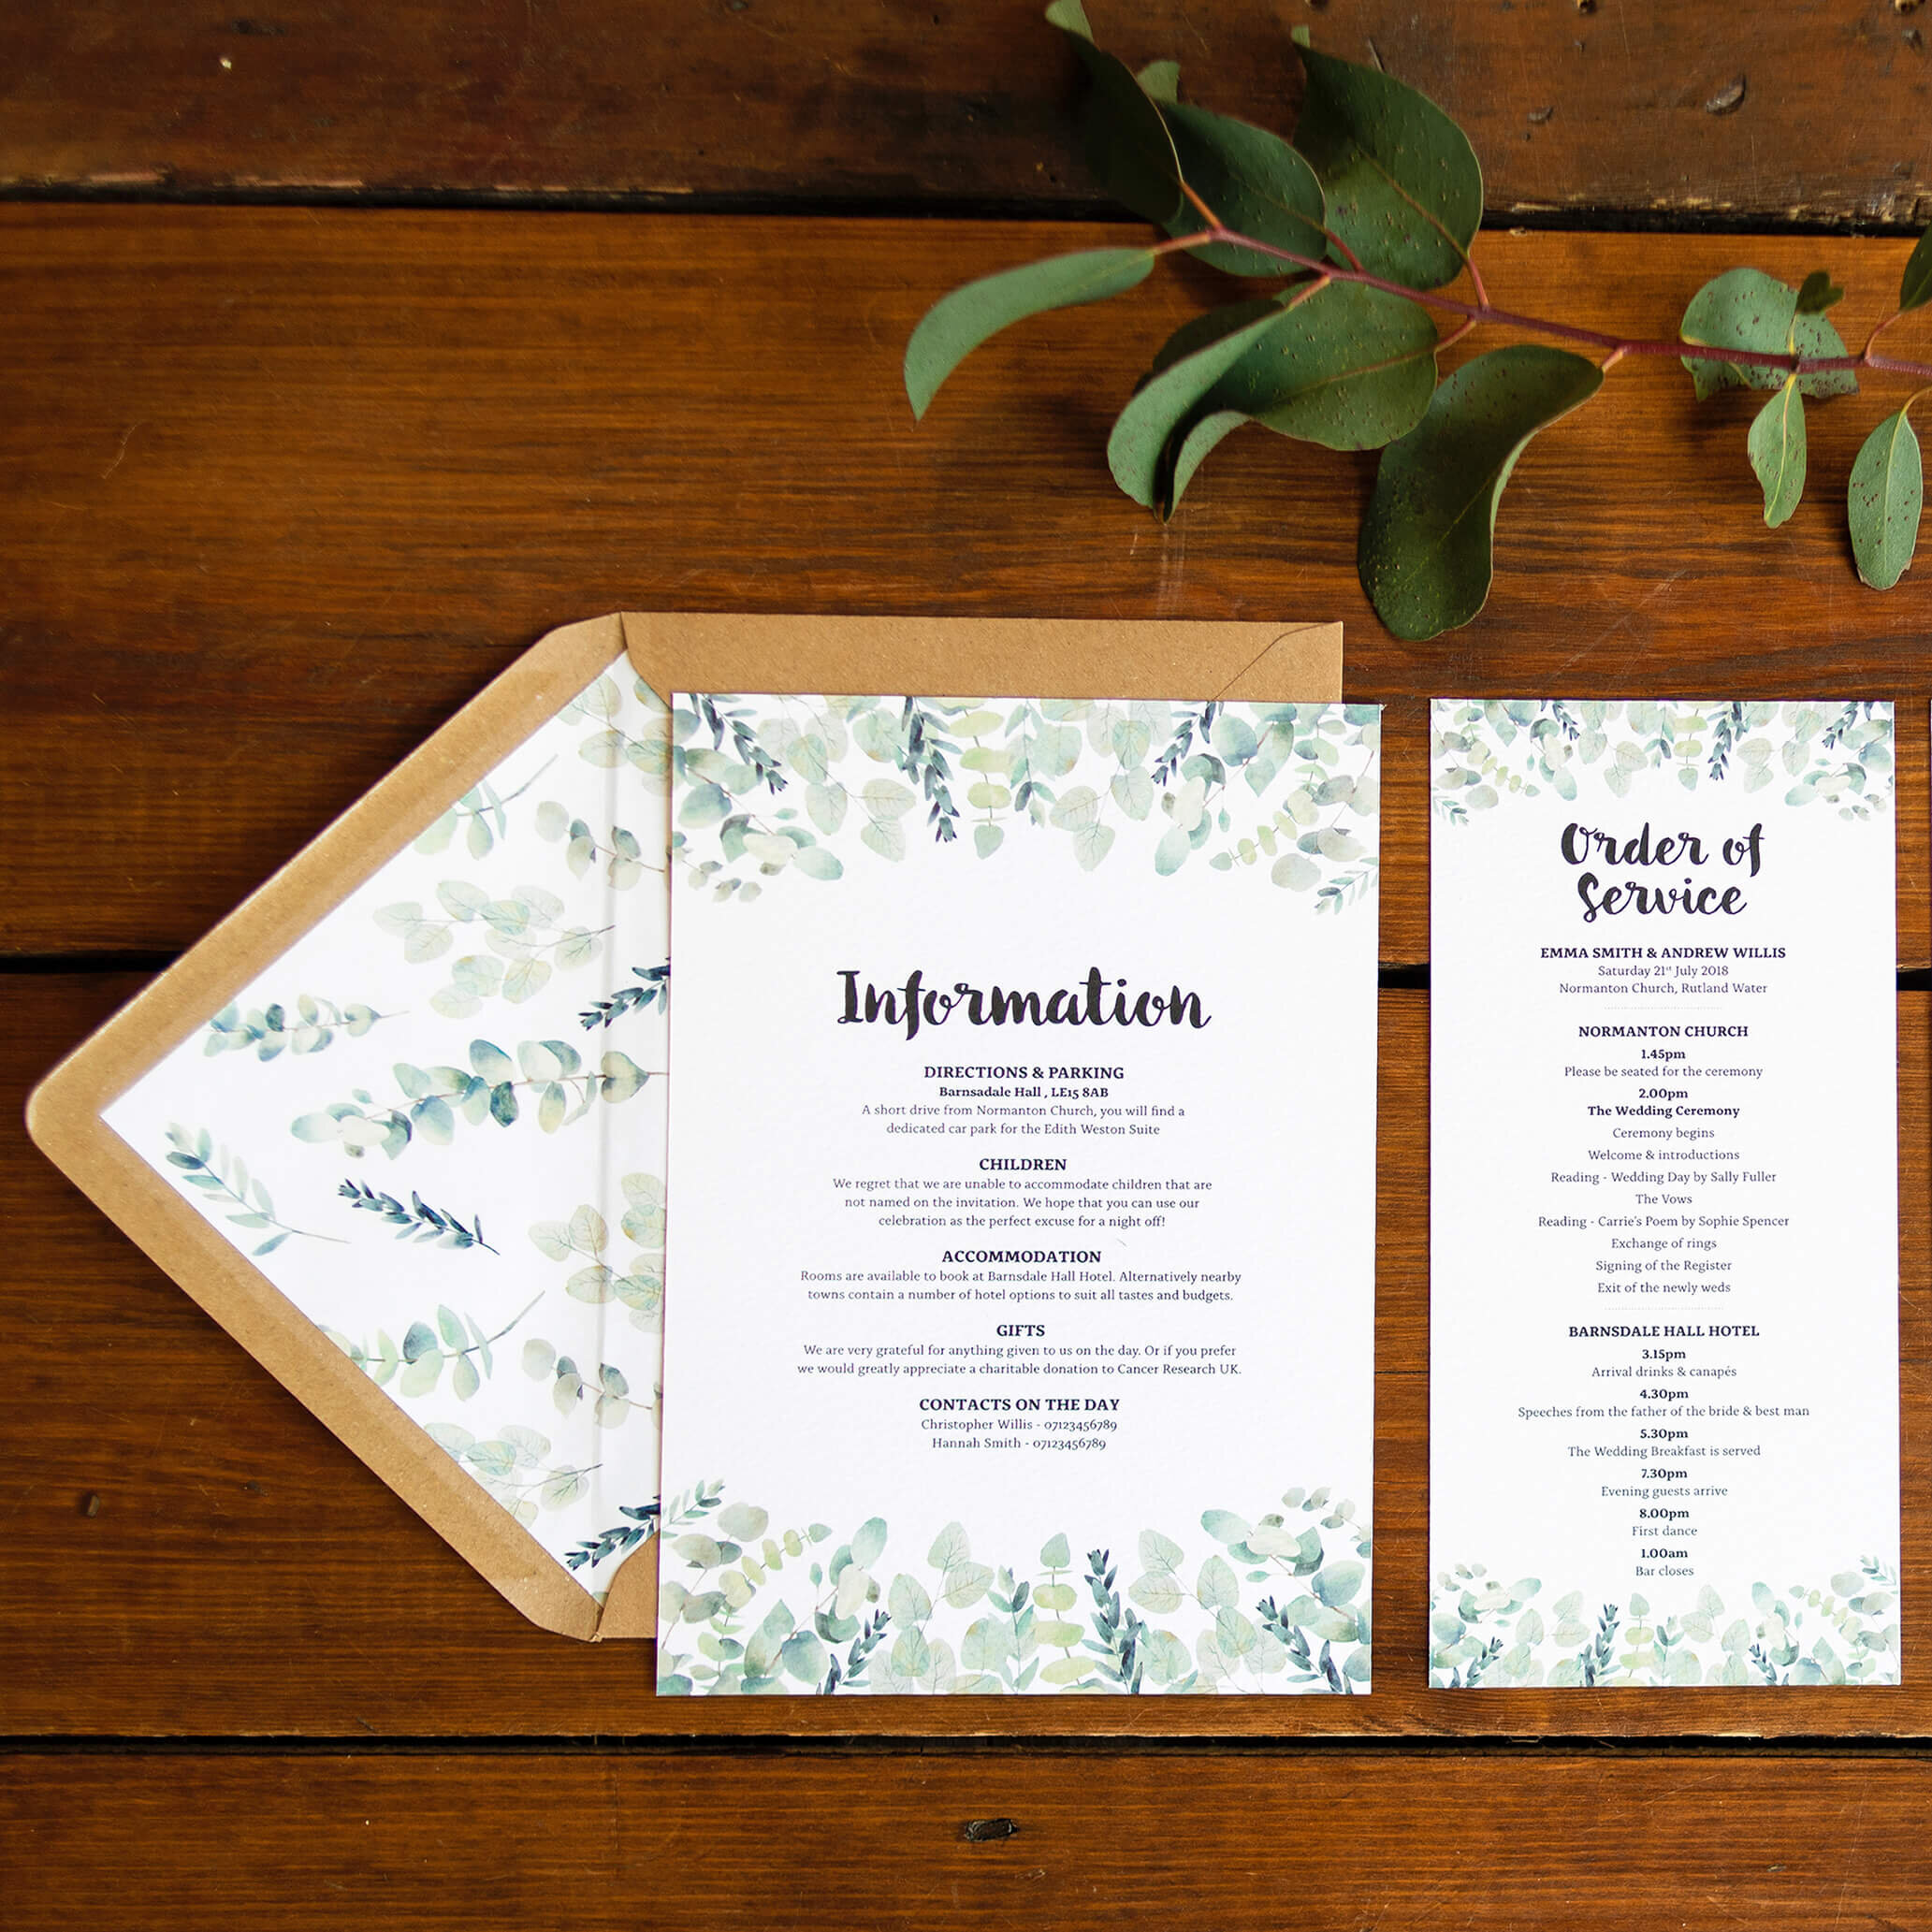 Design By Emily Rustic Eucalyptus Wedding Invitation with Kraft Brown Envelope and envelope liner, with order of service card.